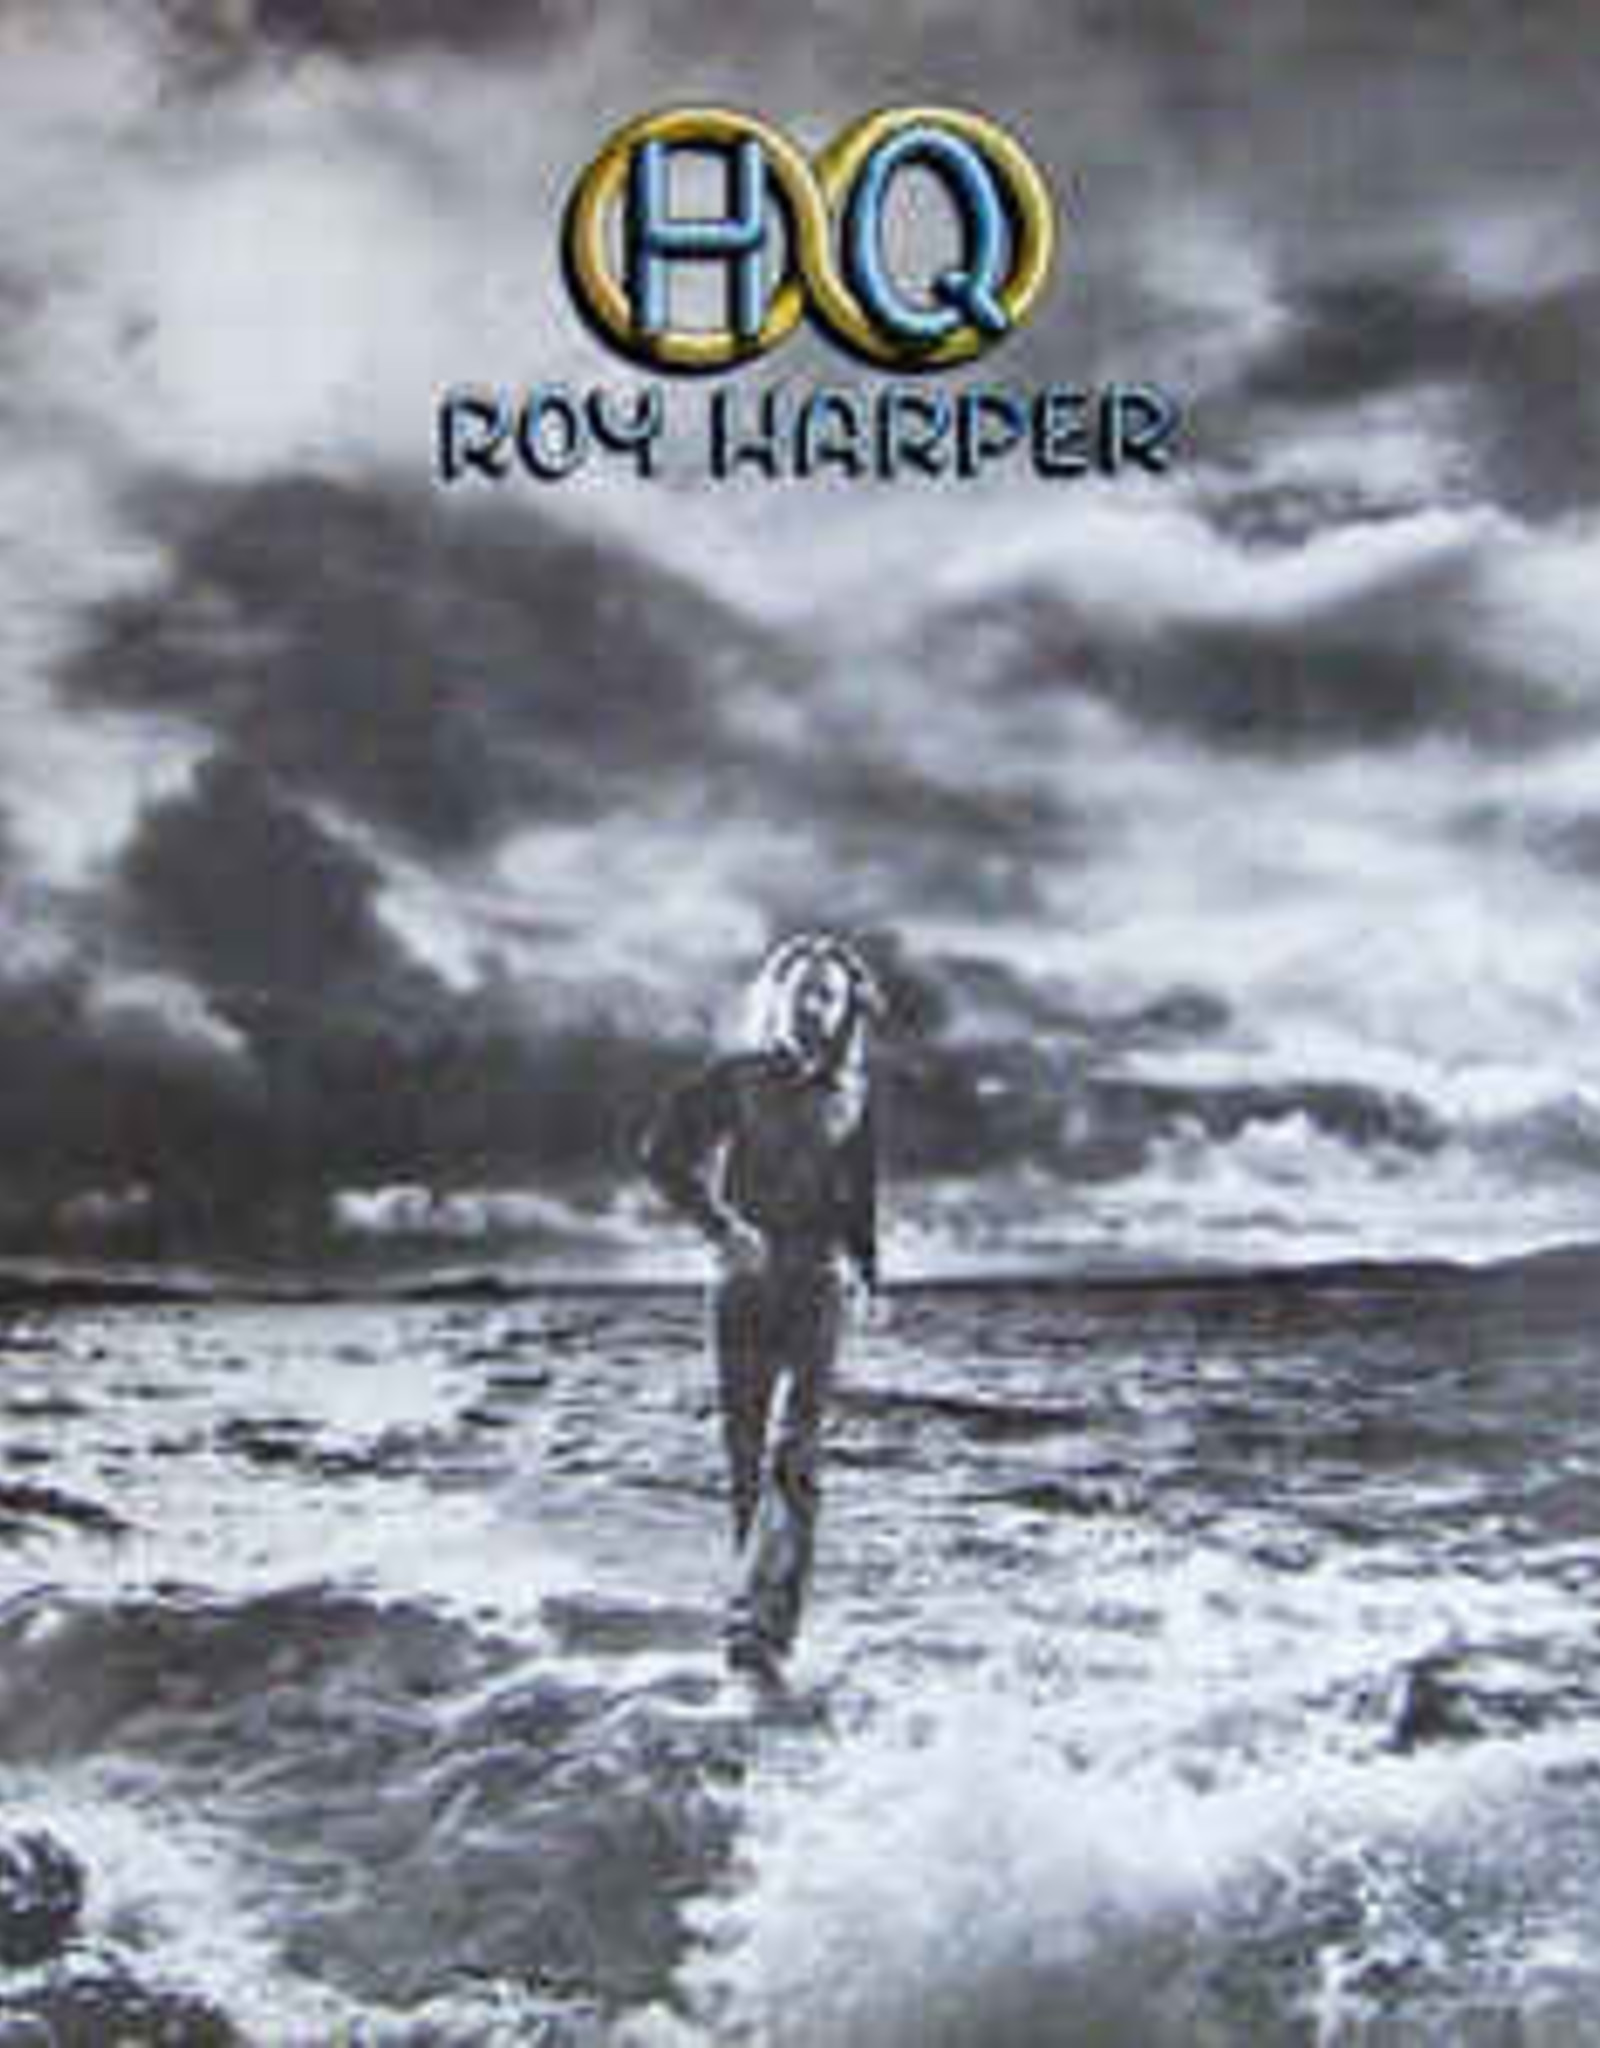 Roy Harper - Hq (Lp)